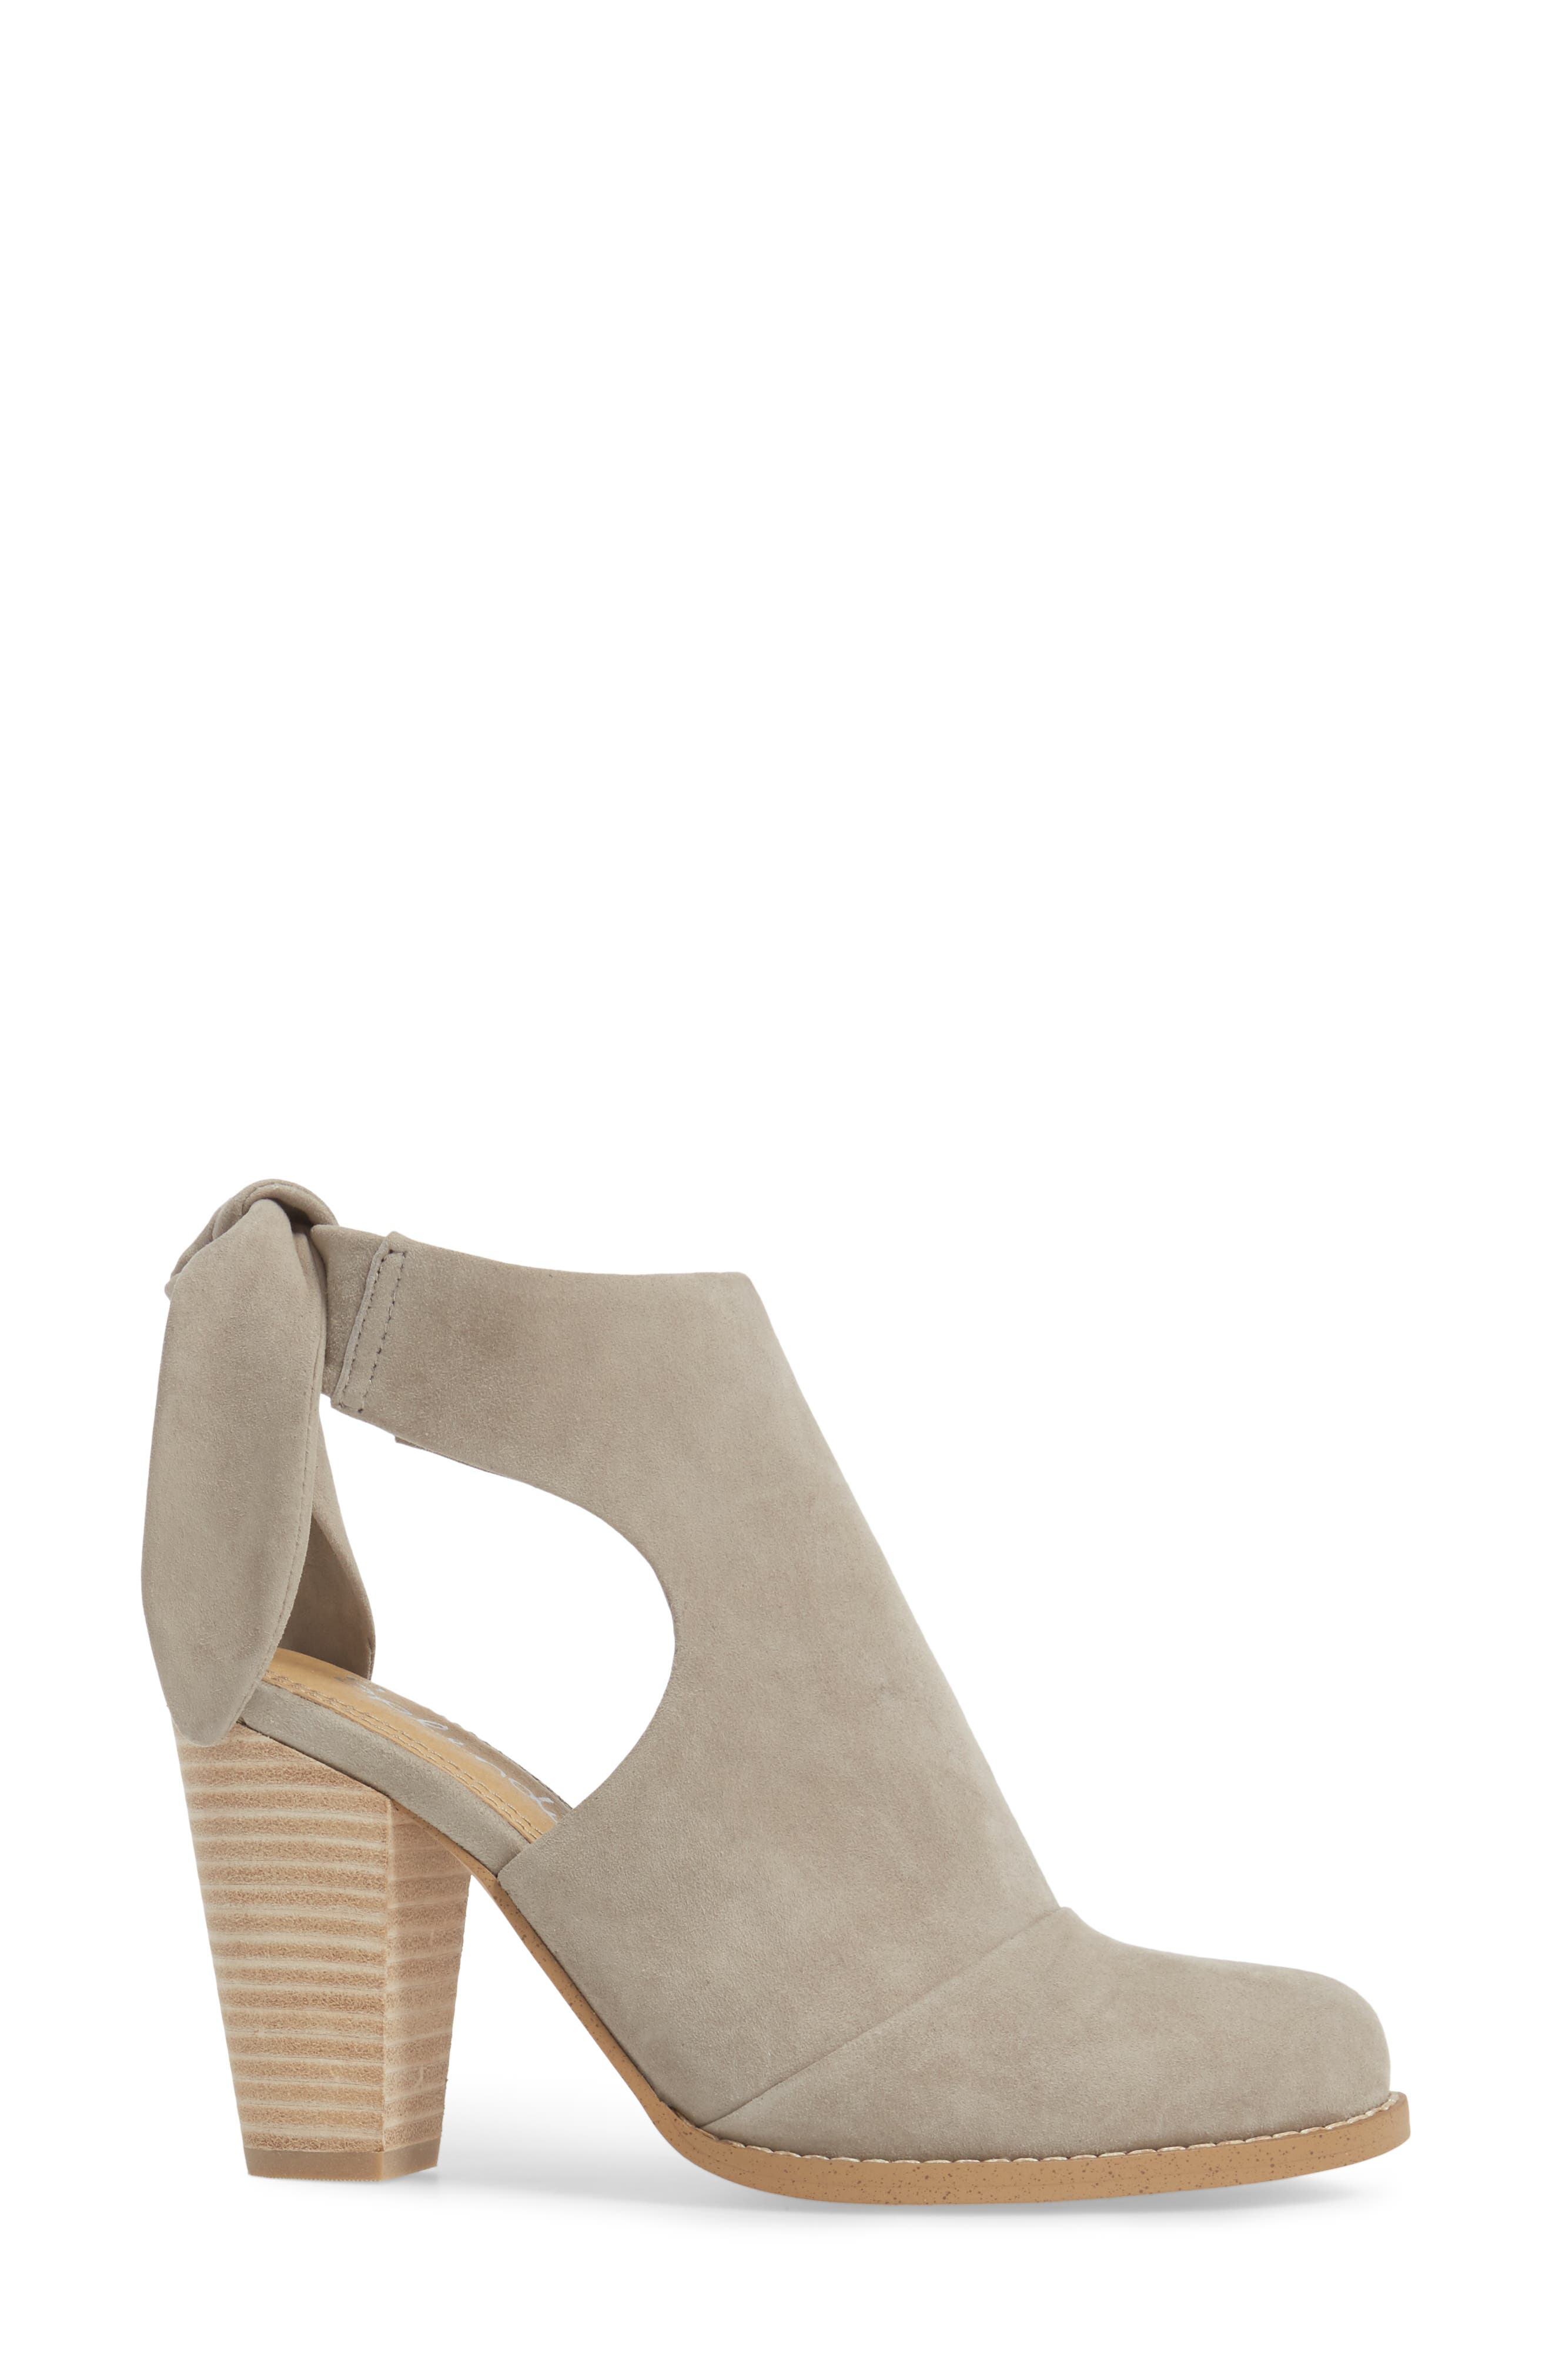 Danae Stacked Heel Bootie,                             Alternate thumbnail 4, color,                             Pearl Grey Suede